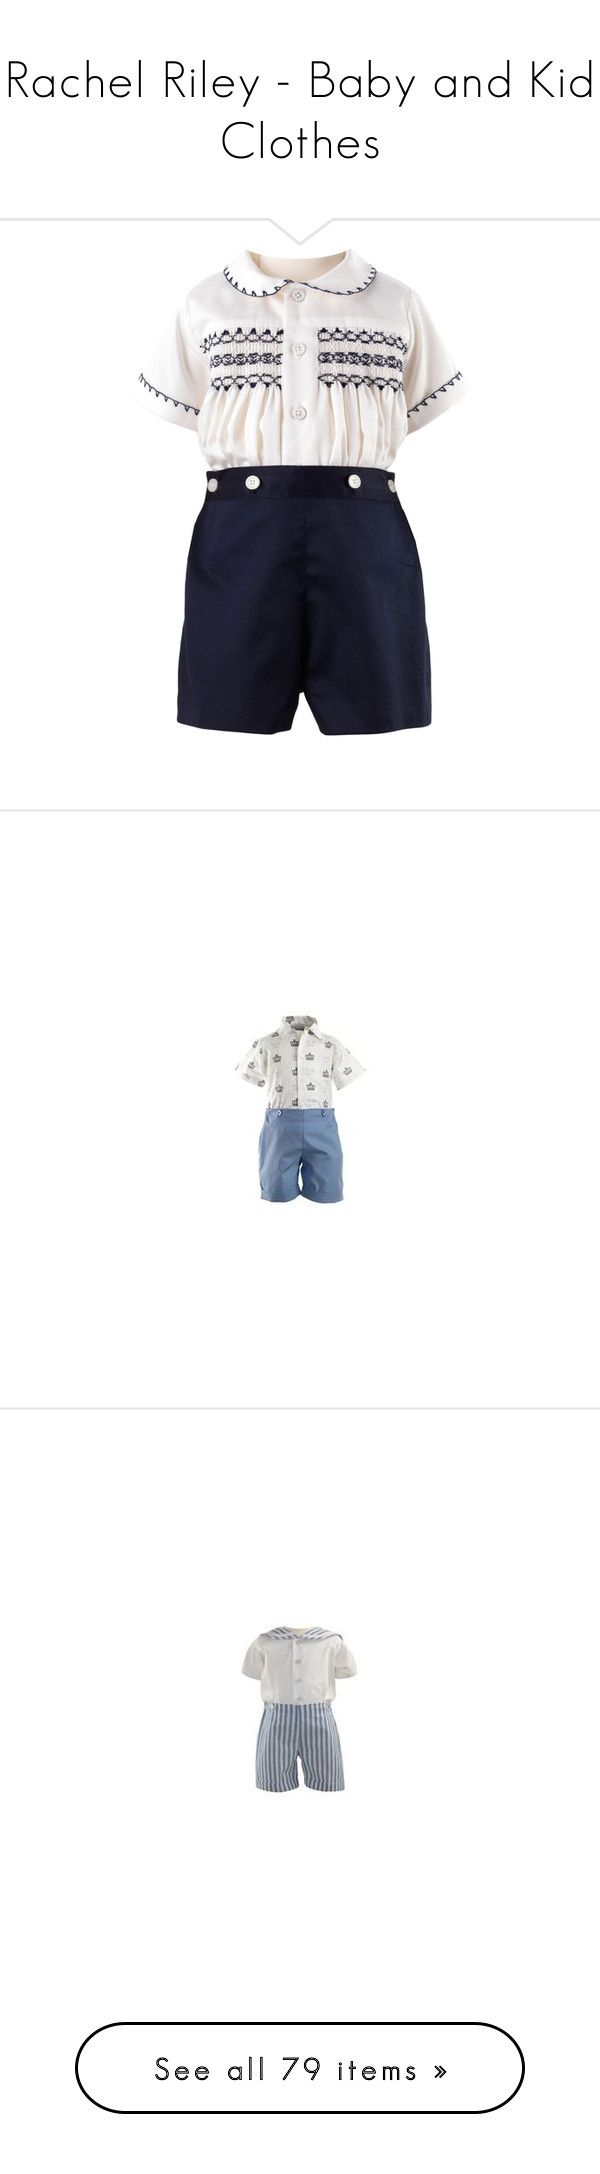 """""""Rachel Riley - Baby and Kid Clothes"""" by immortal-longings ❤ liked on Polyvore featuring pants, cotton pants, blue pants, button pants, cotton trousers, blue cotton pants, intimates, sleepwear, pajamas and jumpsuits"""